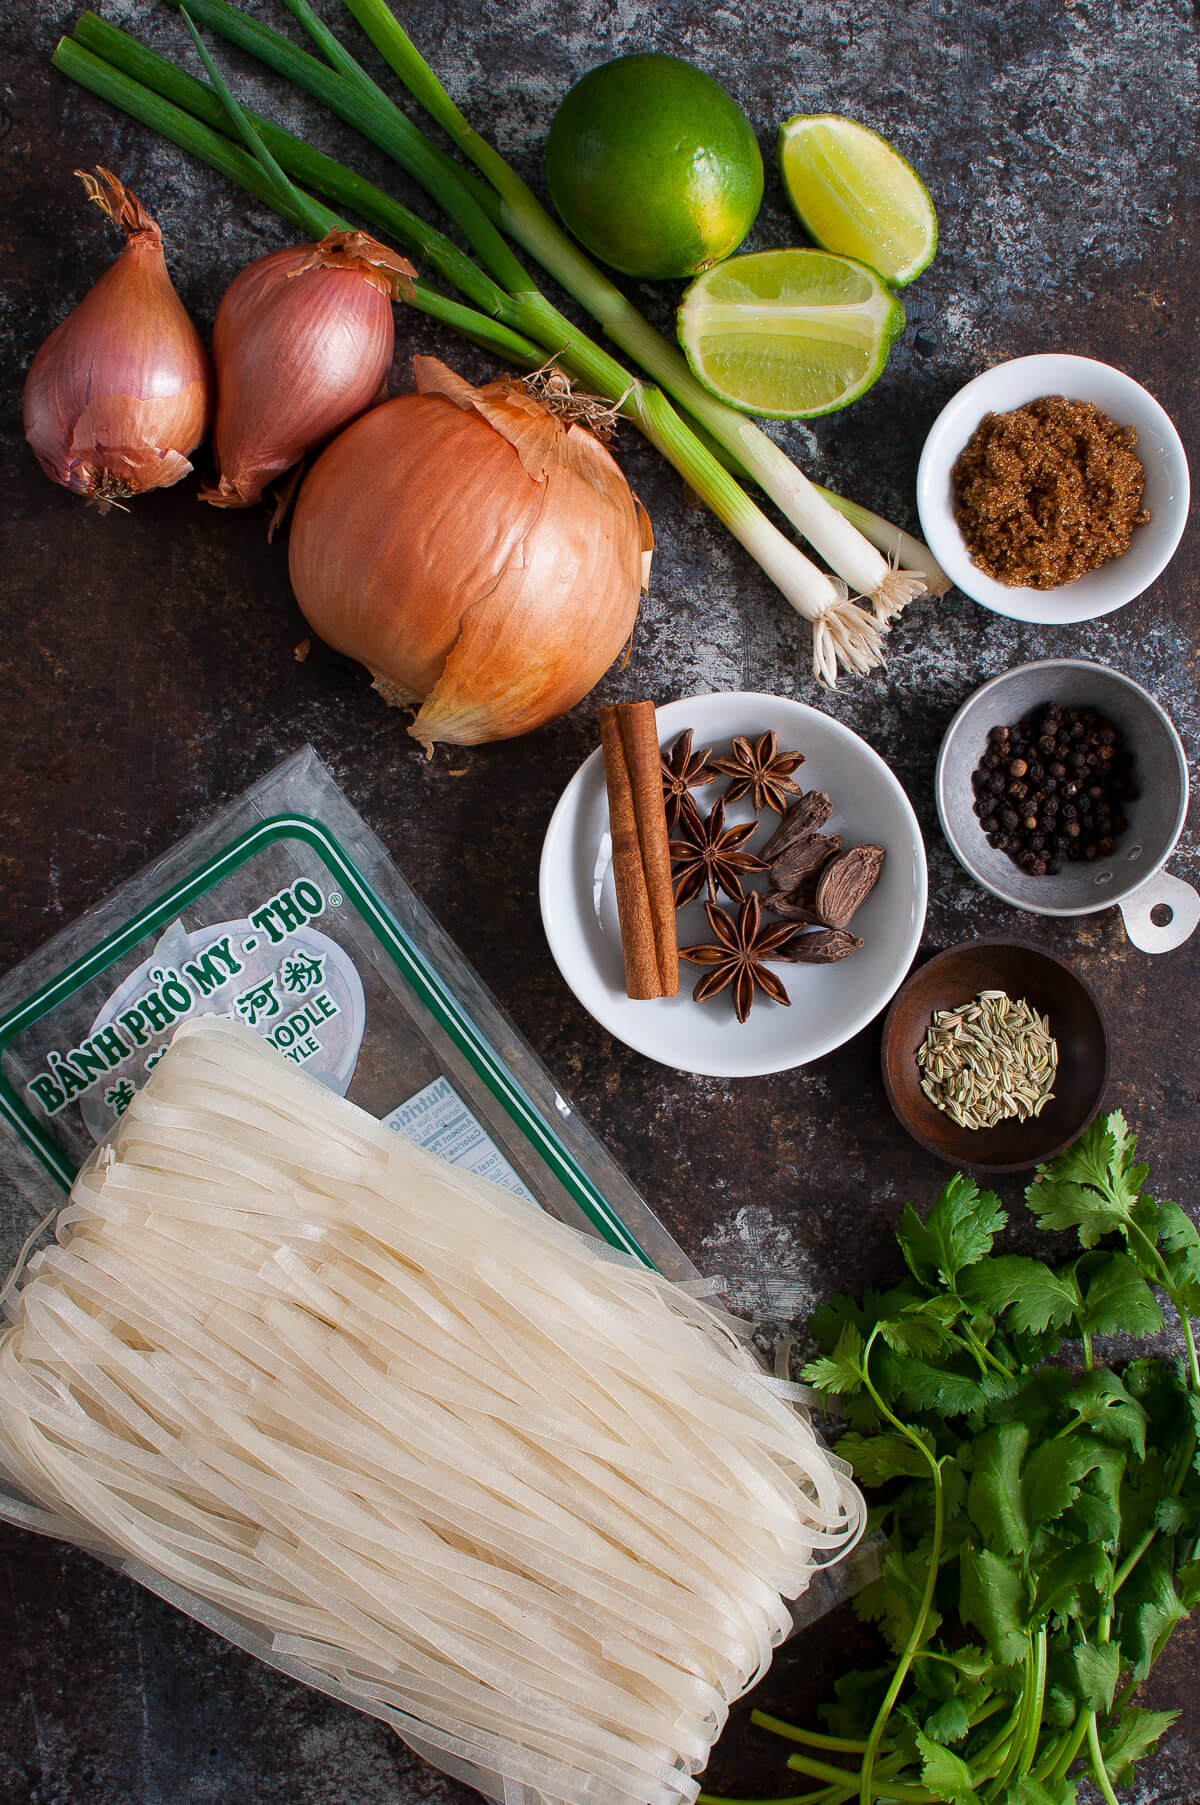 Ingredients for making chicken pho.